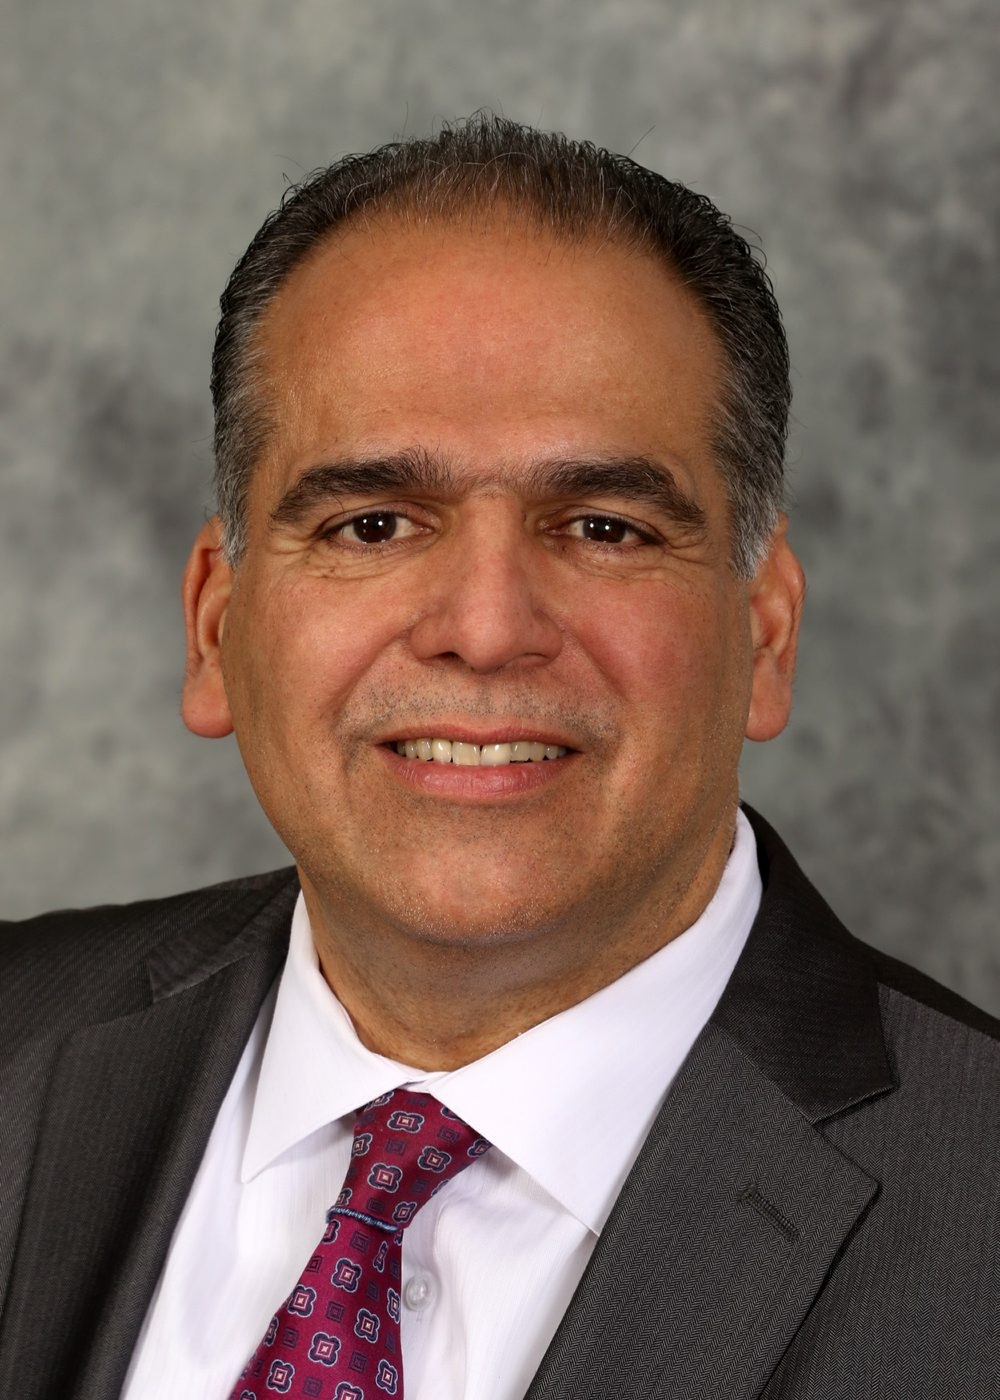 Joseph M. Rizzuto was promoted to administrative vice president at M&T Bank.